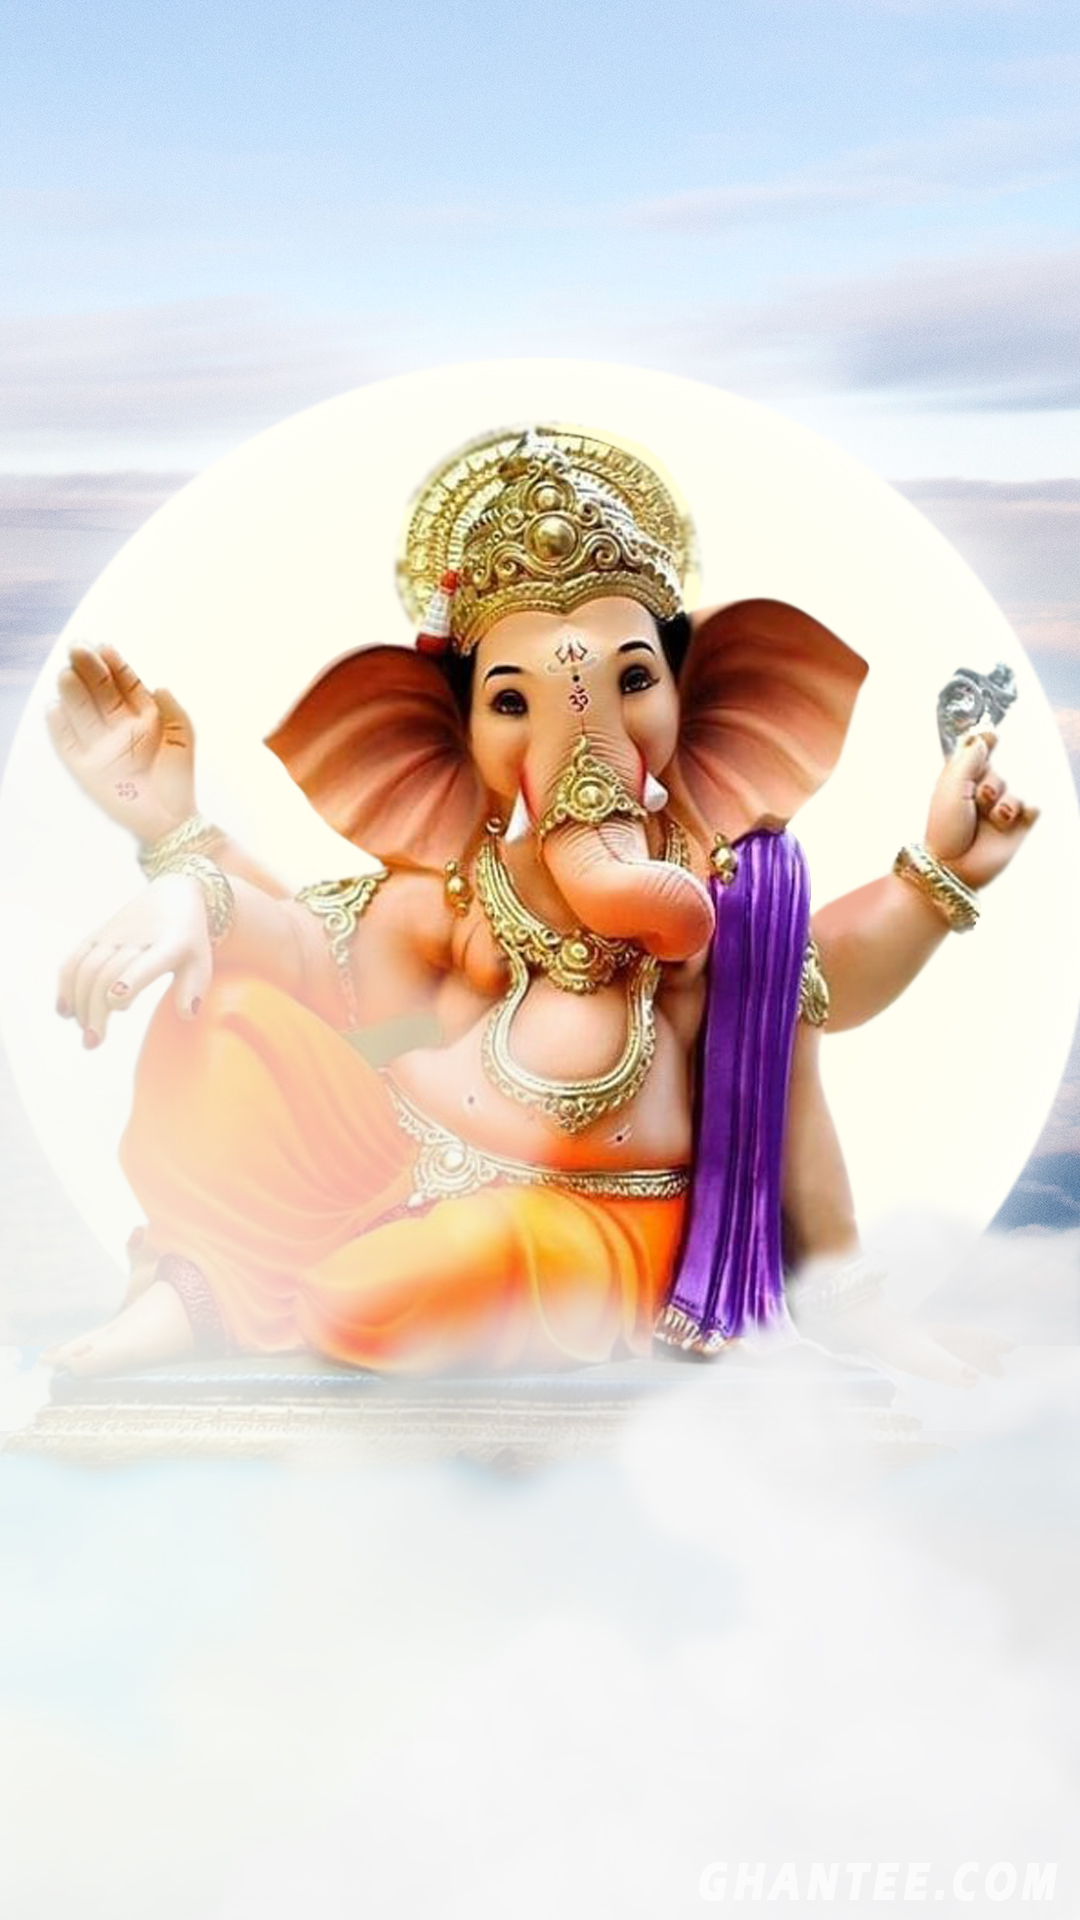 ganesh chaturthi images hd phone wallpaper